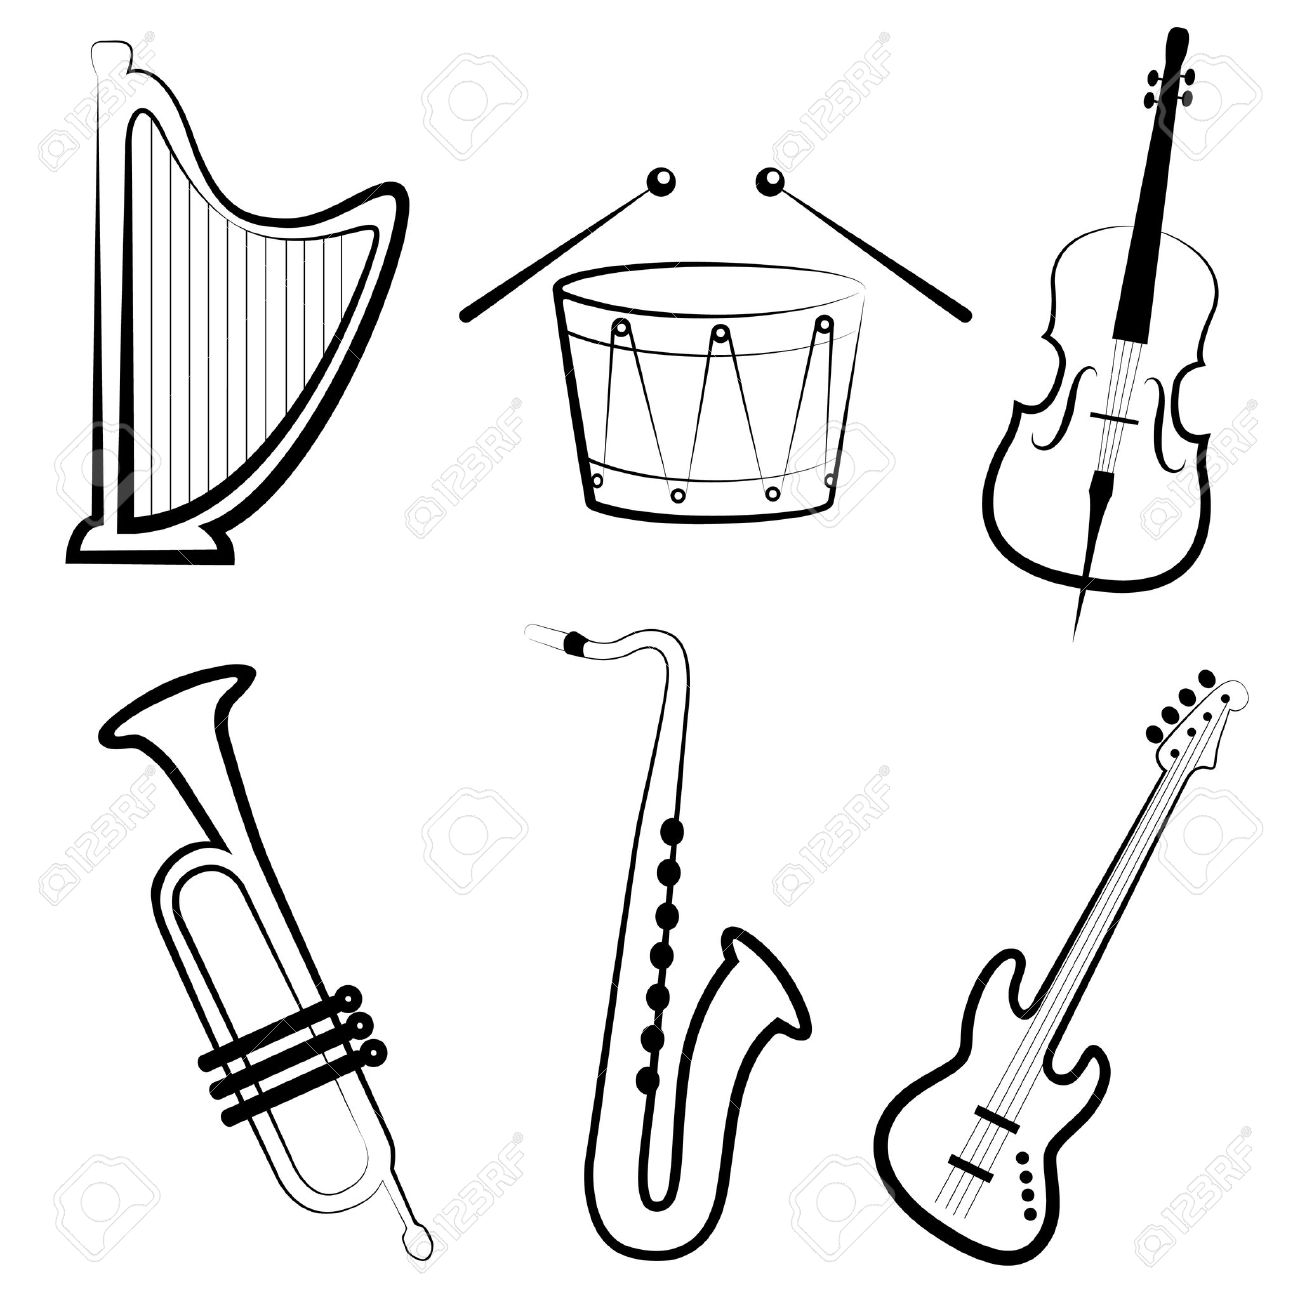 how to draw a musical instrument how to draw an instrument easy step by step wind how musical a to instrument draw